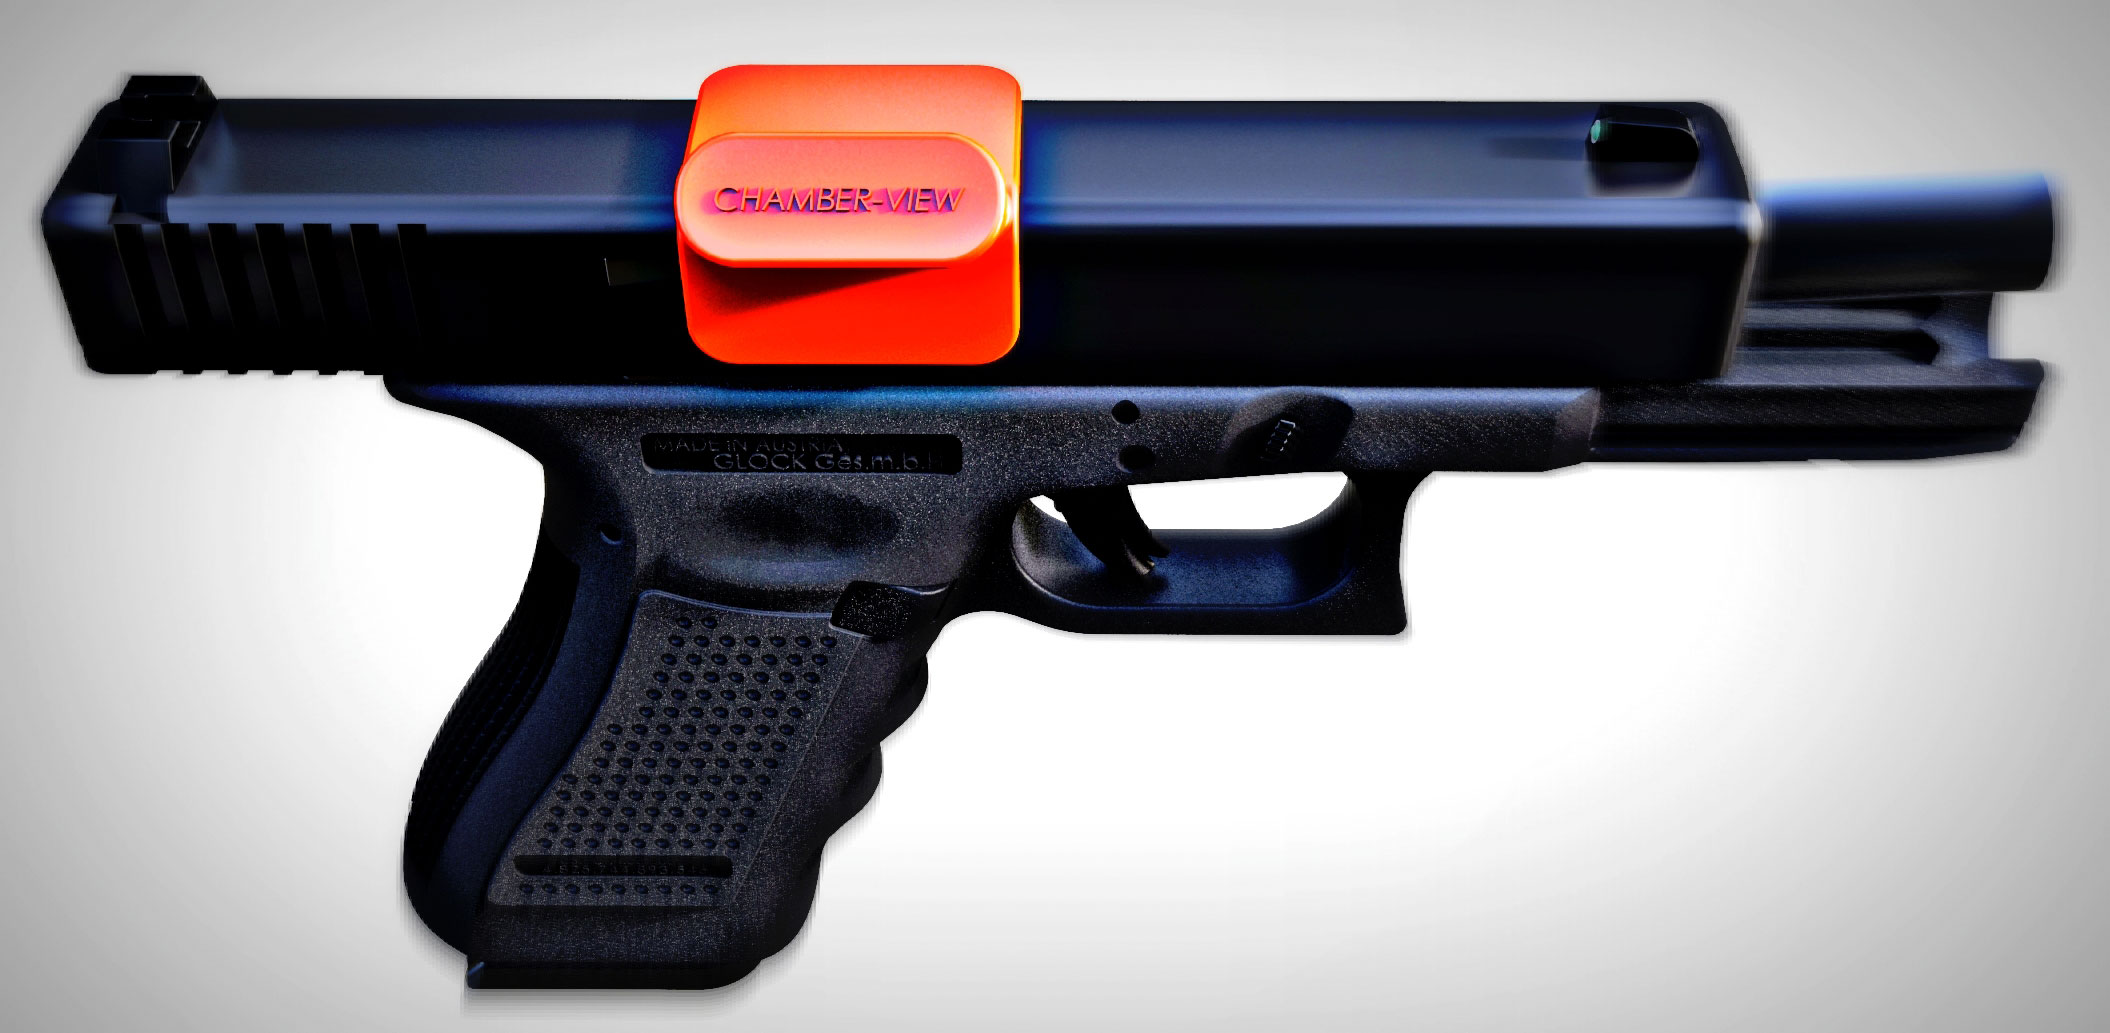 Chamber-View ECI for 9mm & .40 Pistols